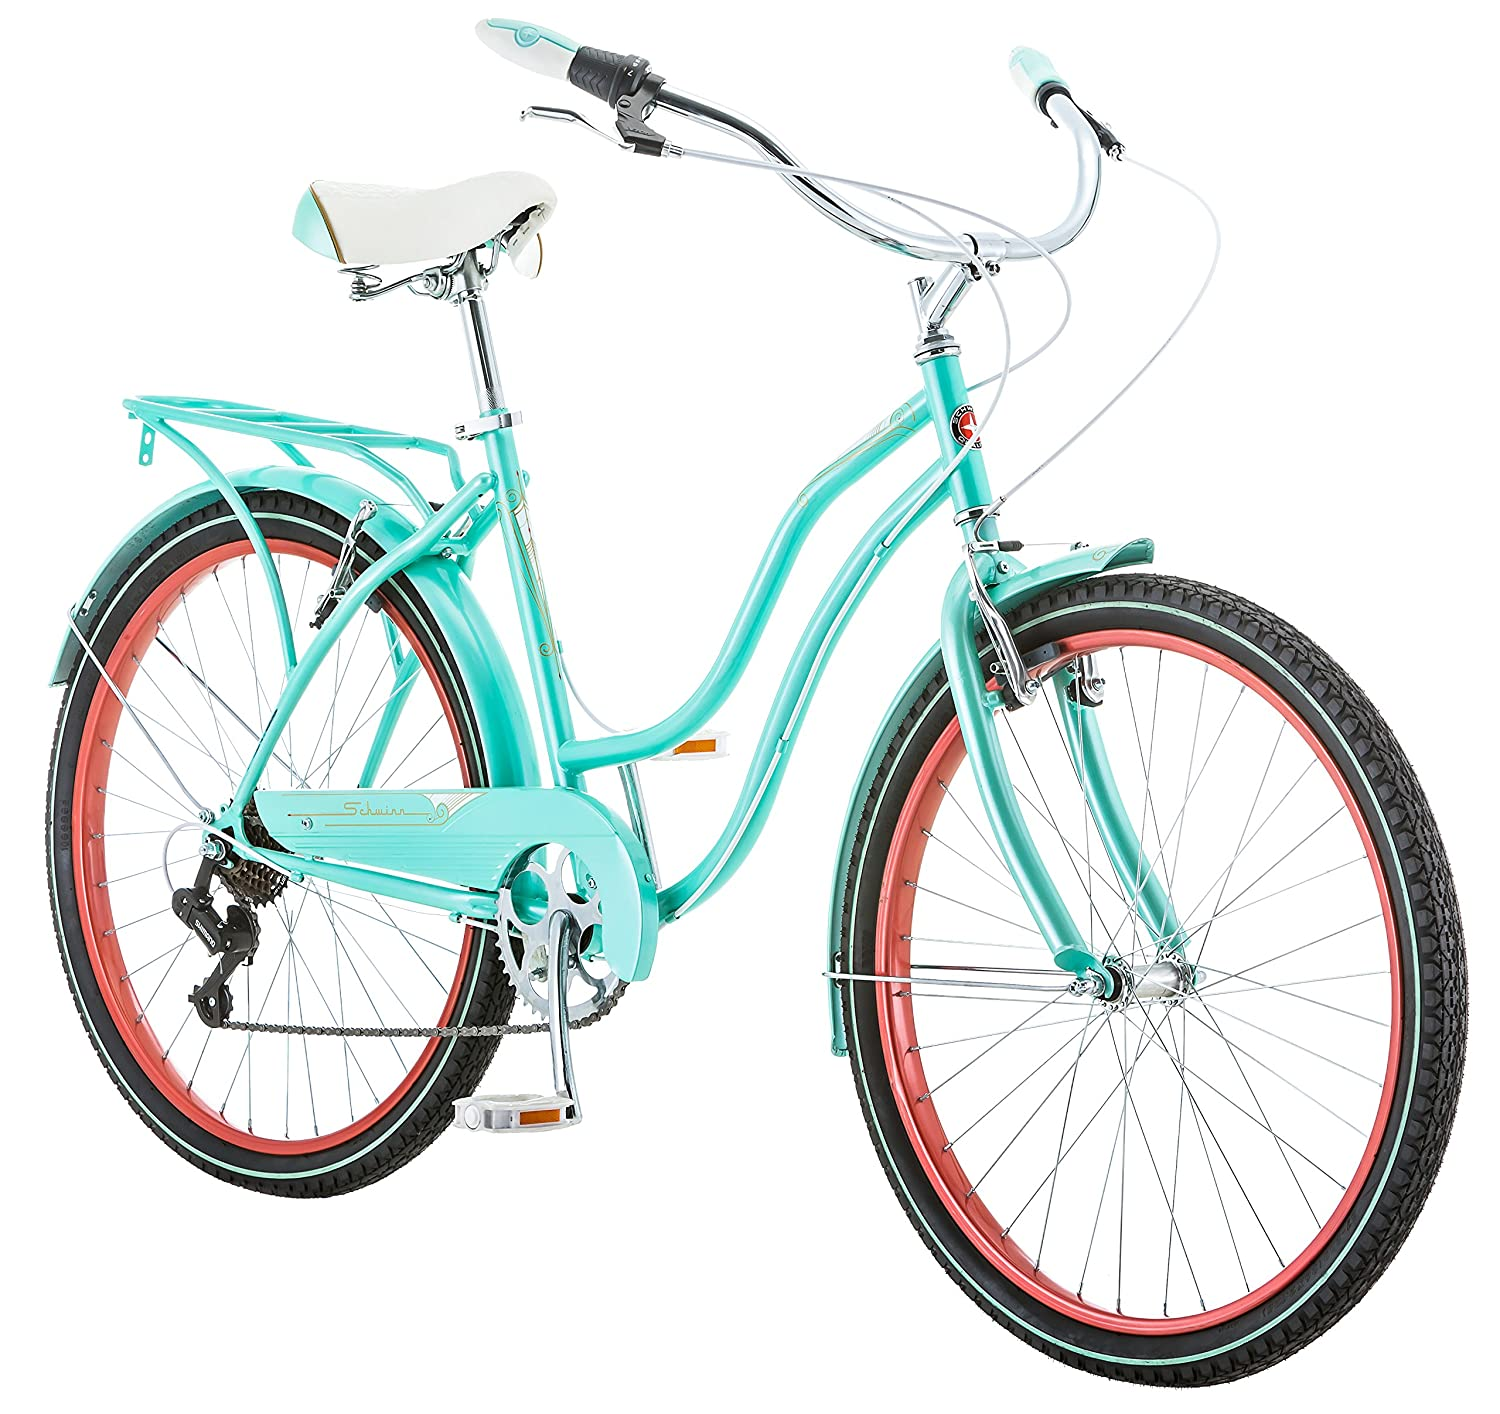 Amazon.com : Schwinn Perla Cruiser Women\'s Bicycle, 26 inch wheel ...